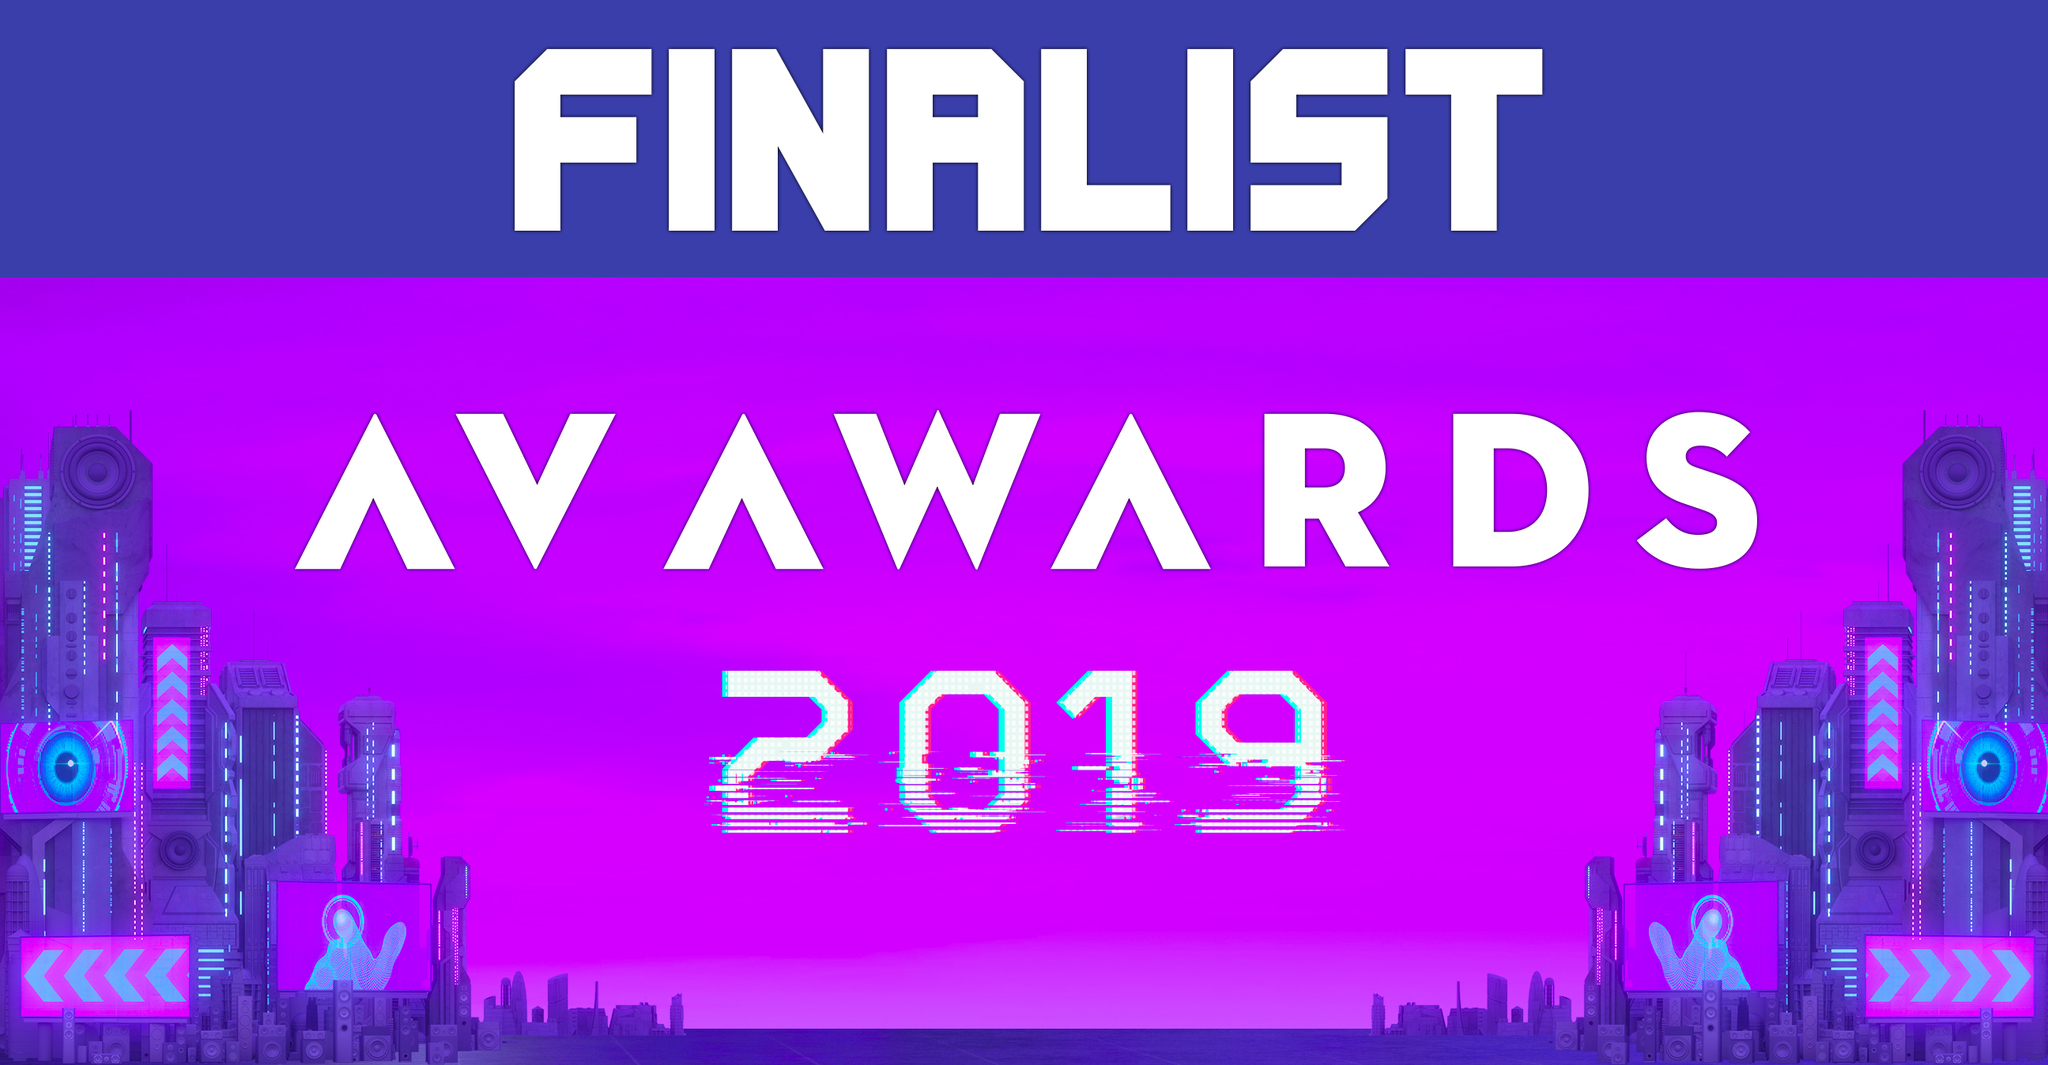 advoli AV Awards 2019 Finalist with TA4E video cards.